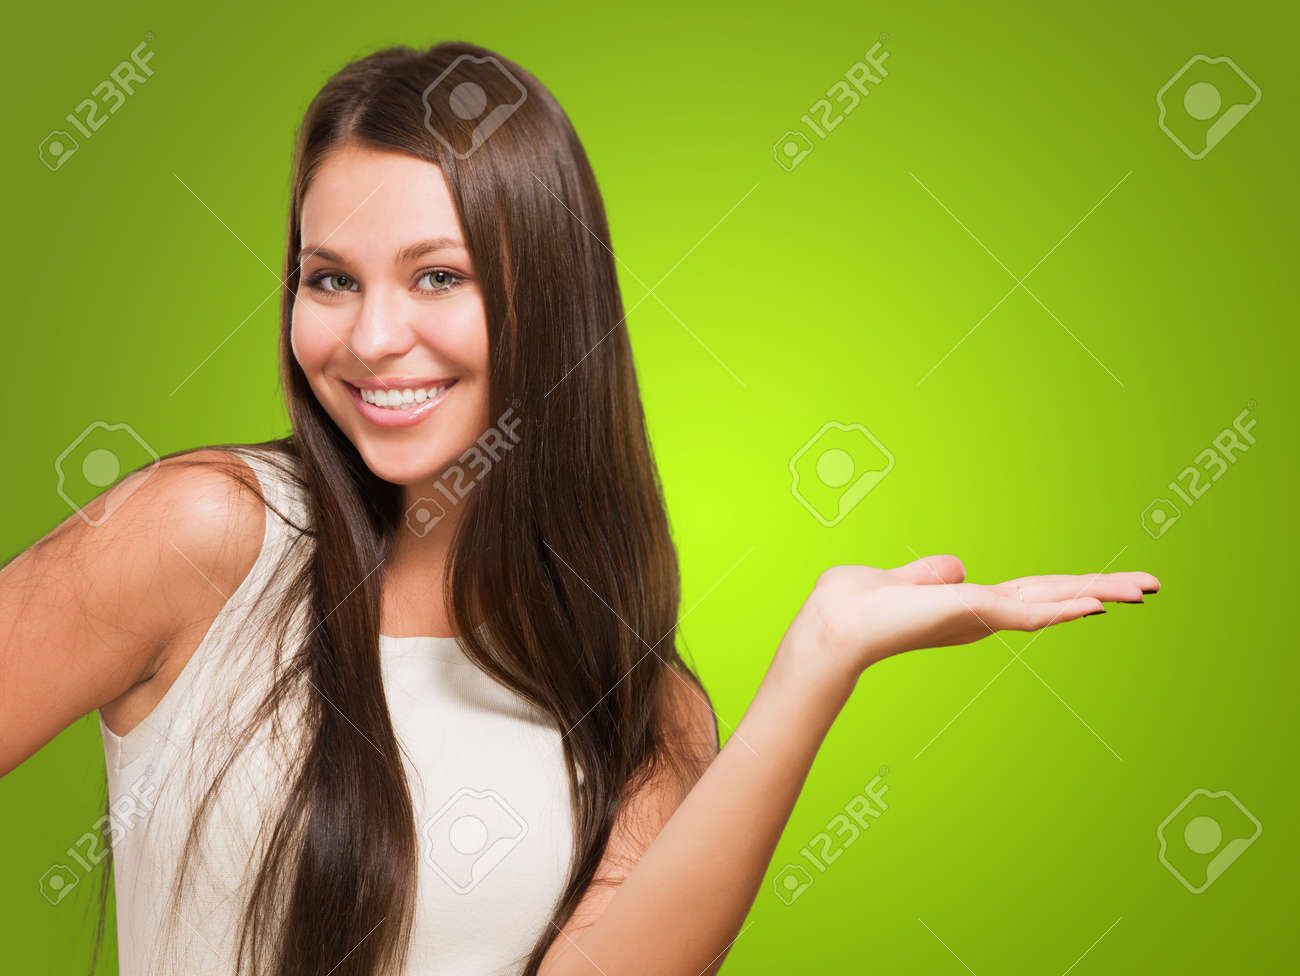 Happy Woman doing a gesture against a green background - 16671753